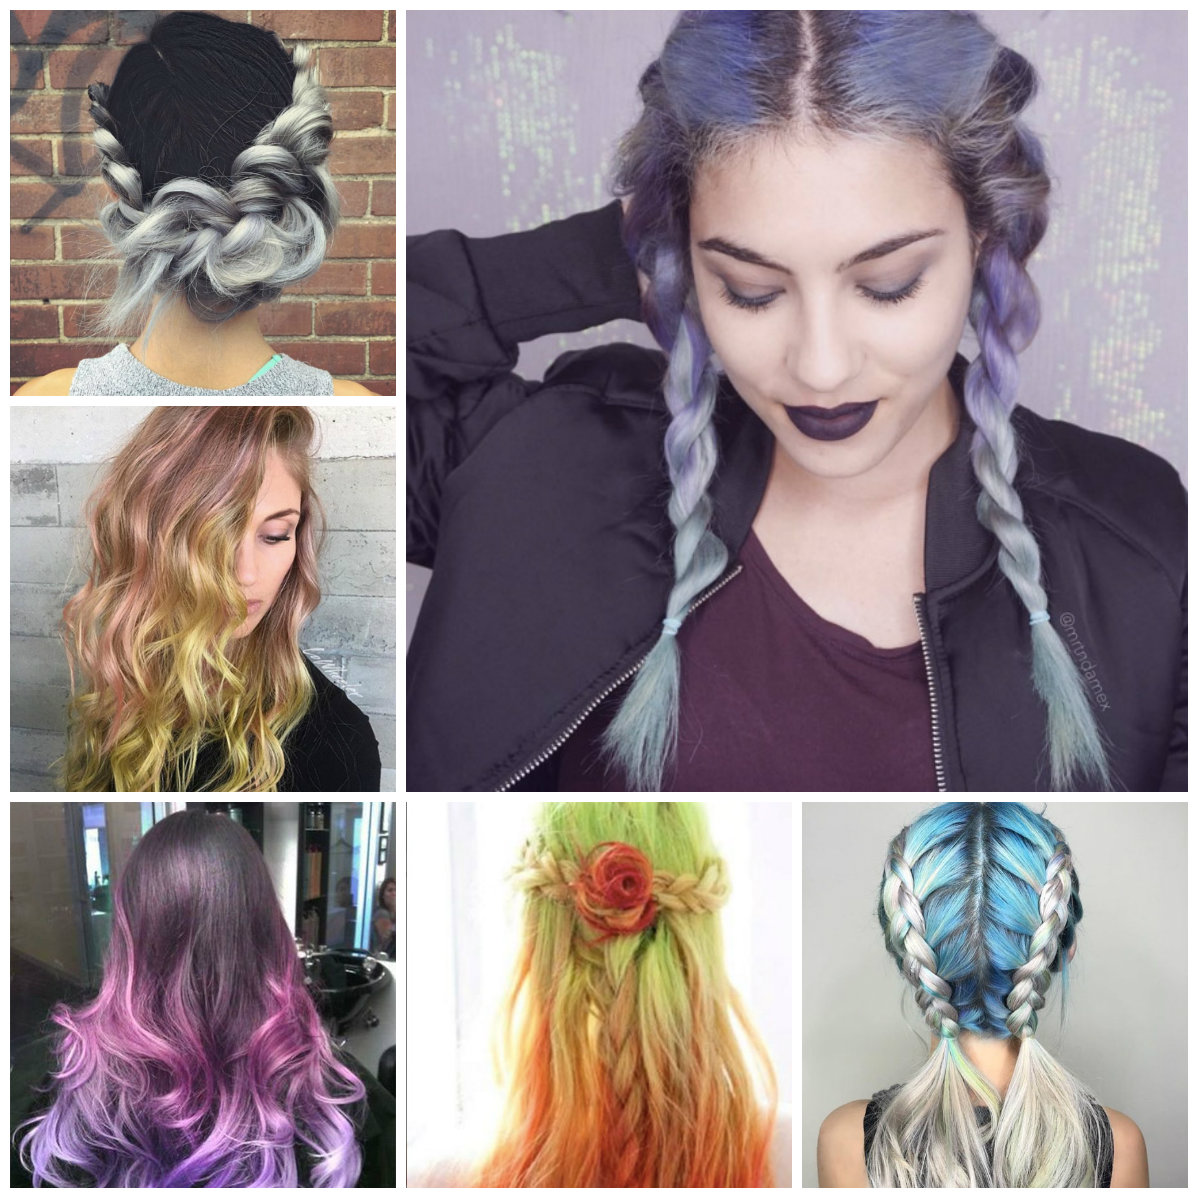 Multi Toned Hair Color Ideas To Try In 2016 2019 Haircuts